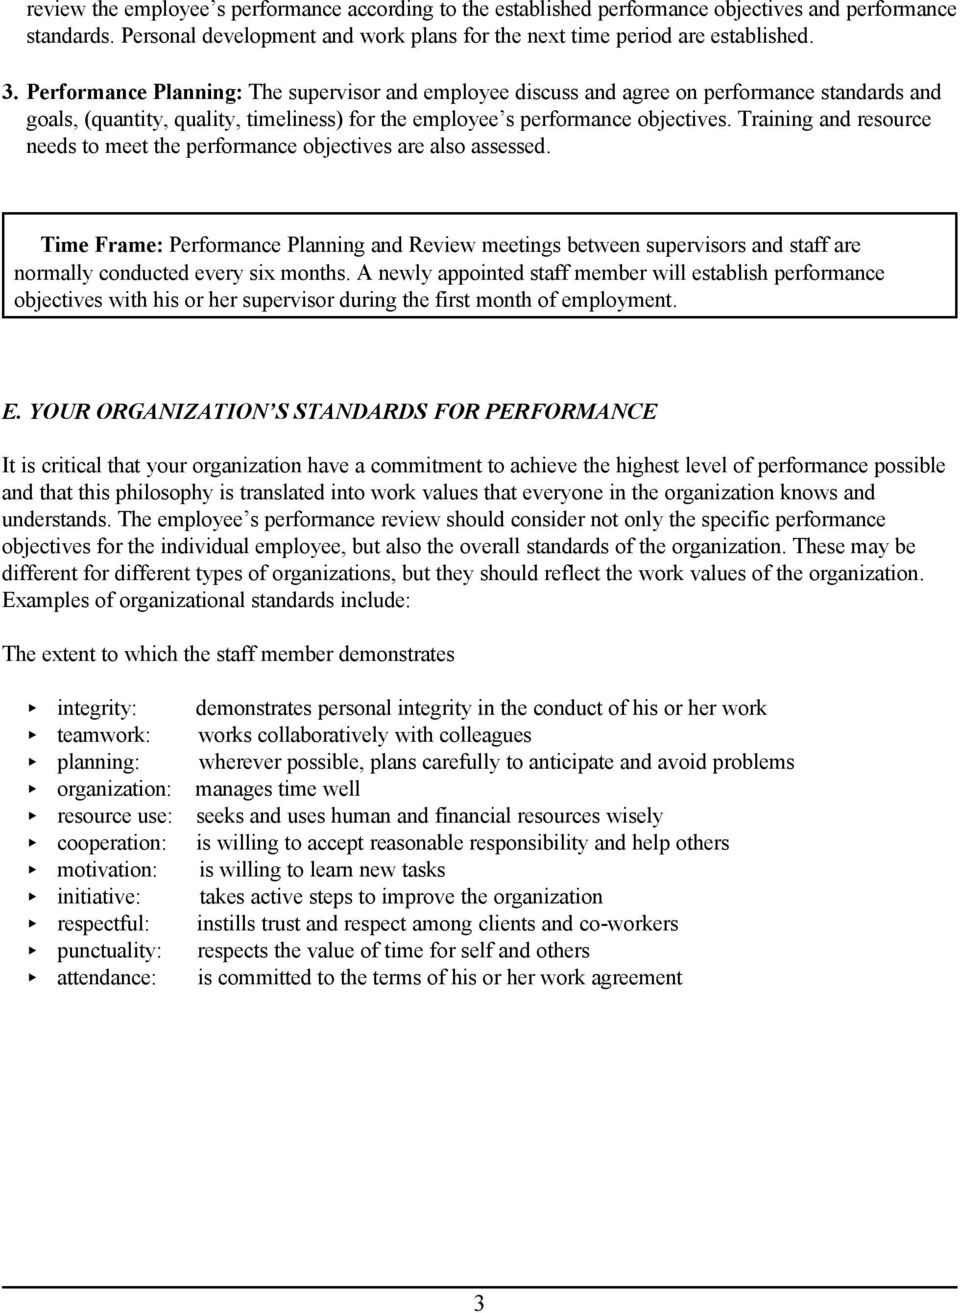 Training and resource needs to meet the performance objectives are also assessed.